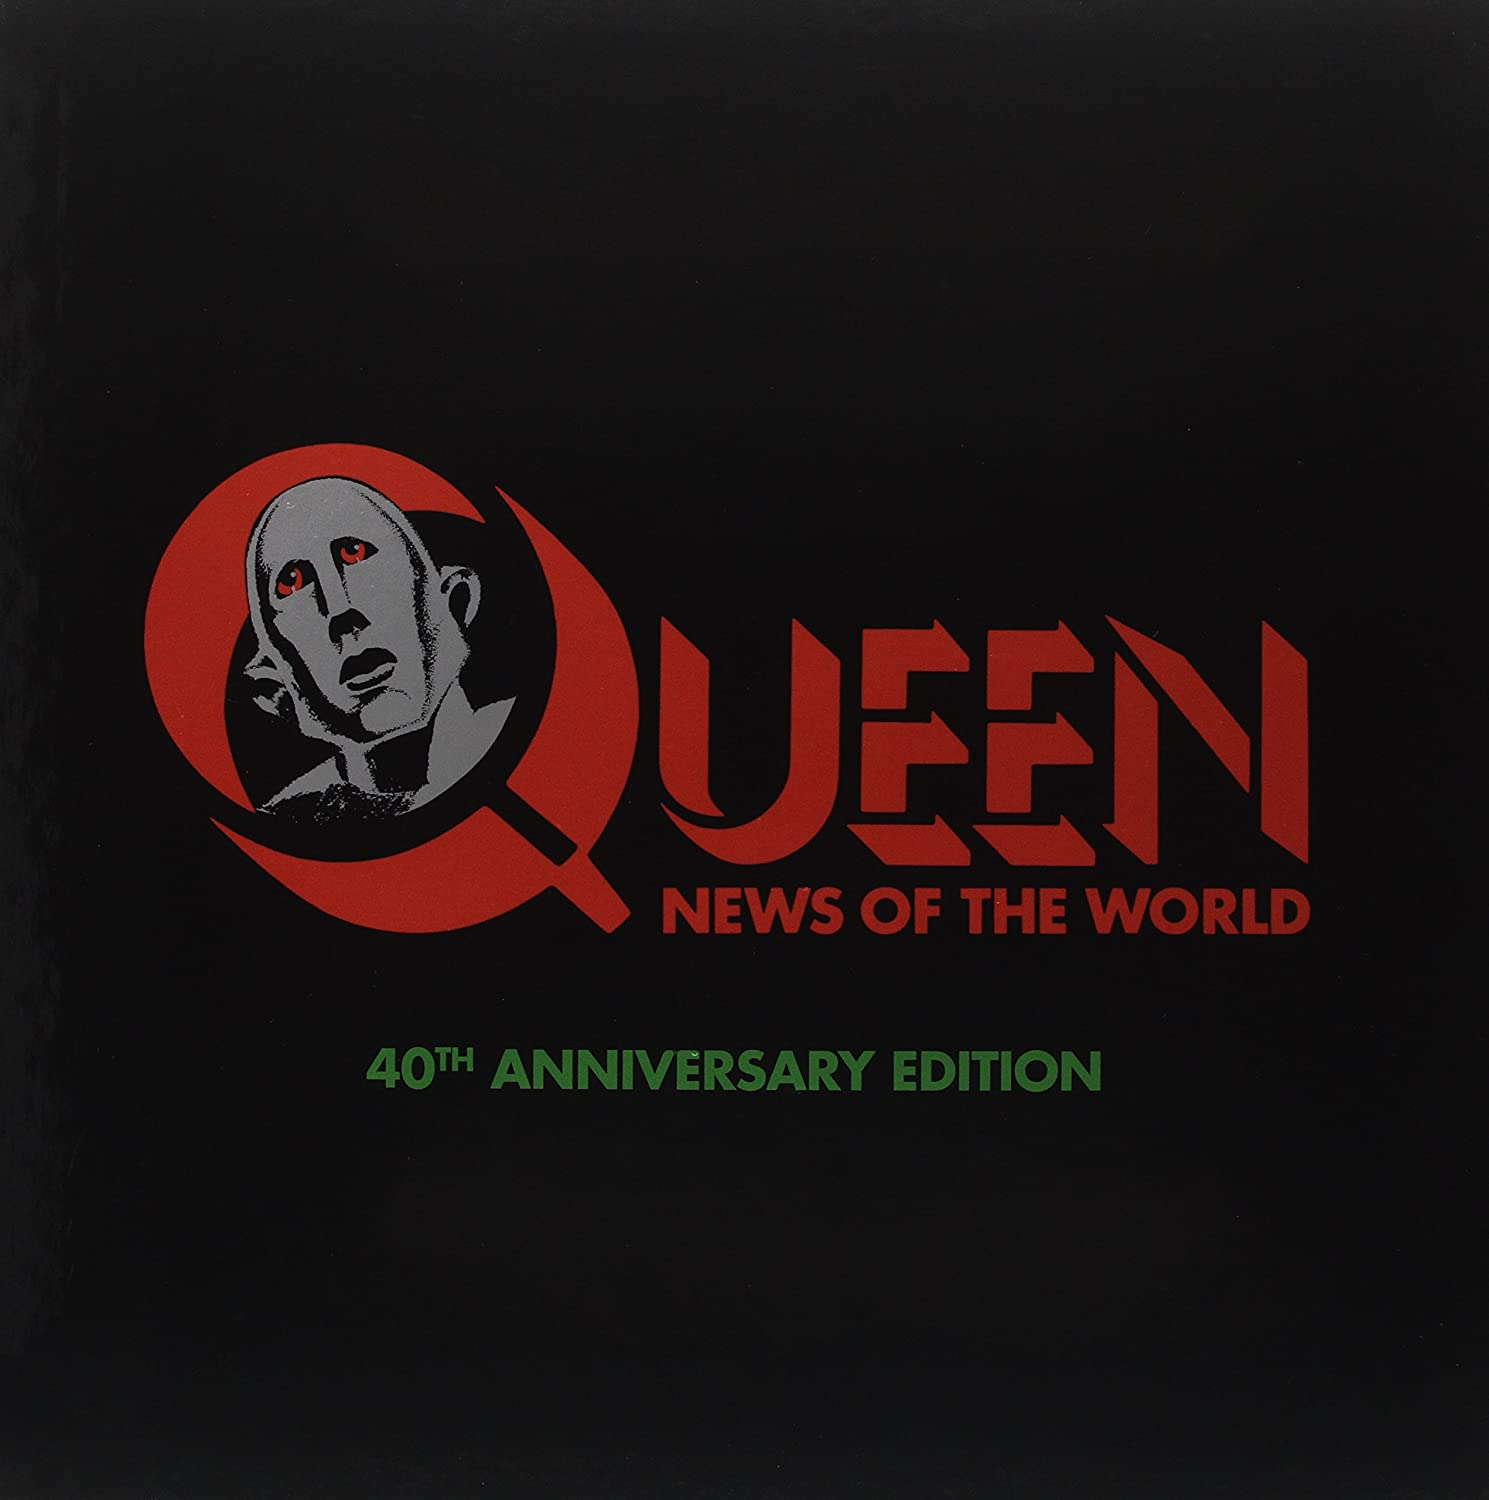 NEWS OF THE WORLD [3CD+LP+DVD BOX] (40TH ANNIVERSARY)                                                                                                                                                                                                                                                                                                                                                                                                <span class=